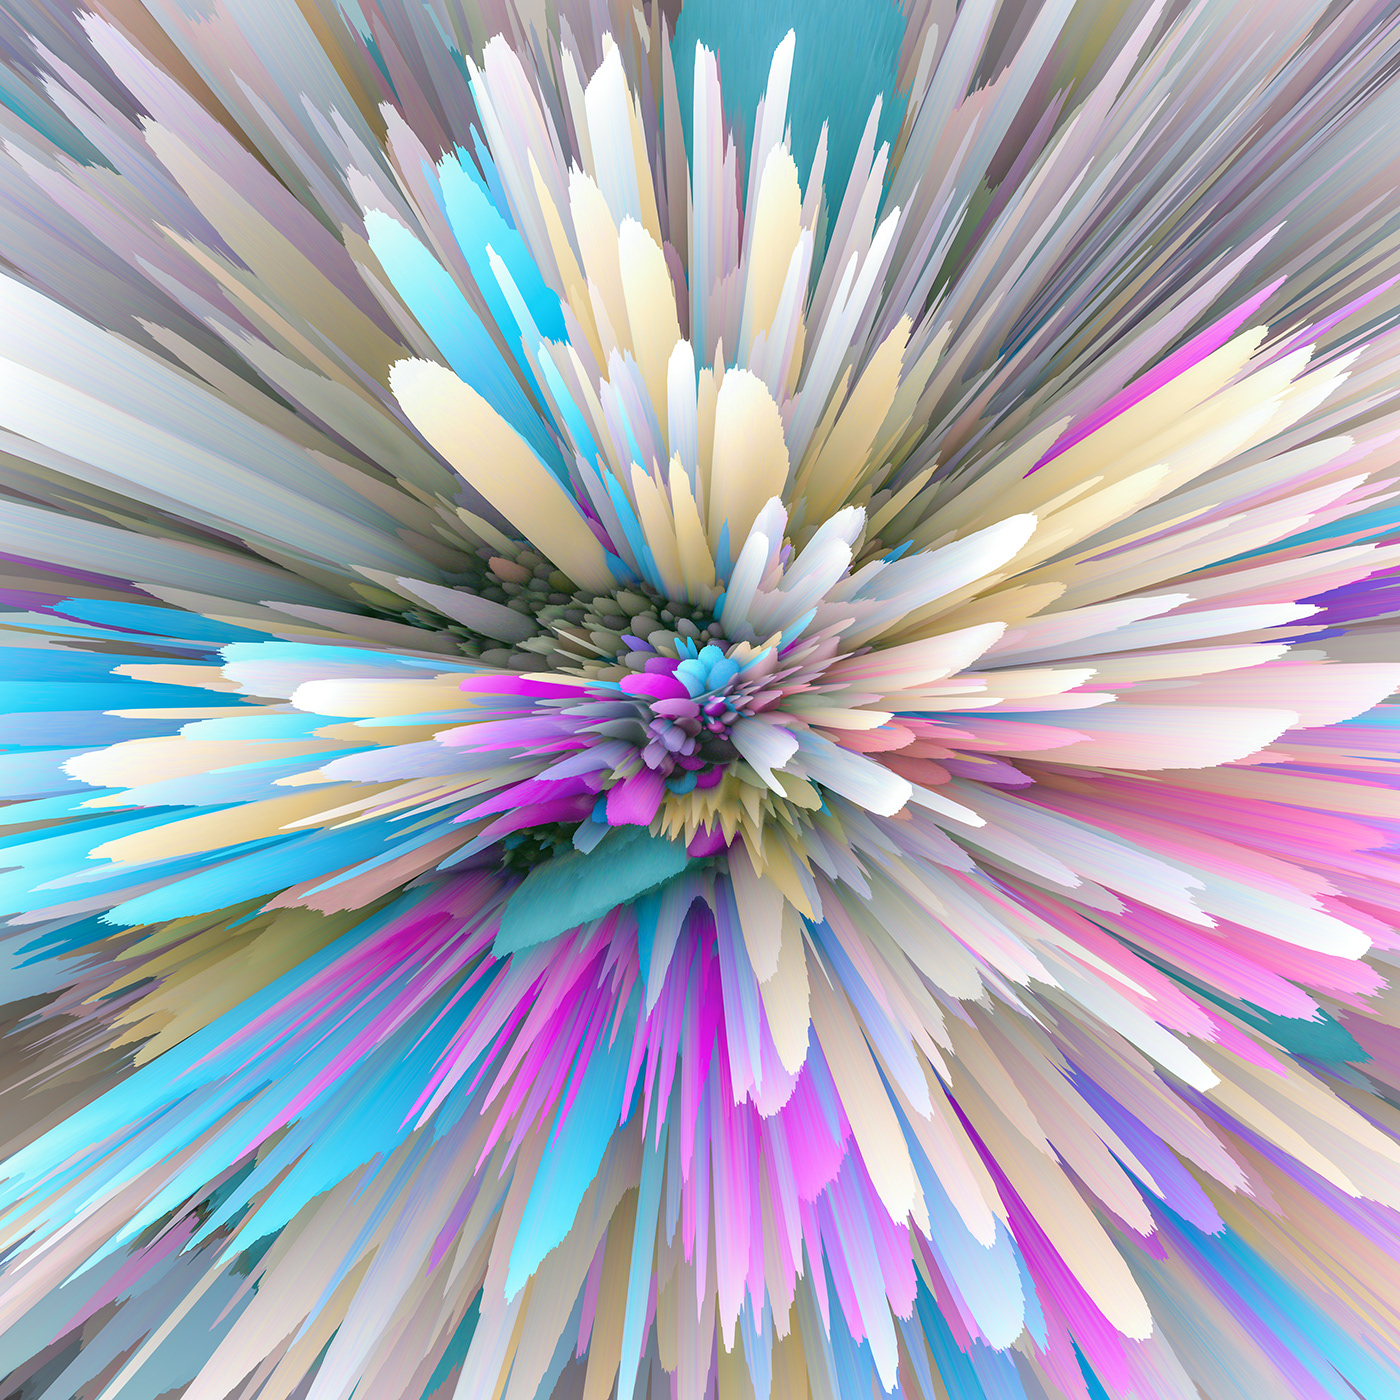 abstract adobe art background CGI colorful photoshop Render wallpaper